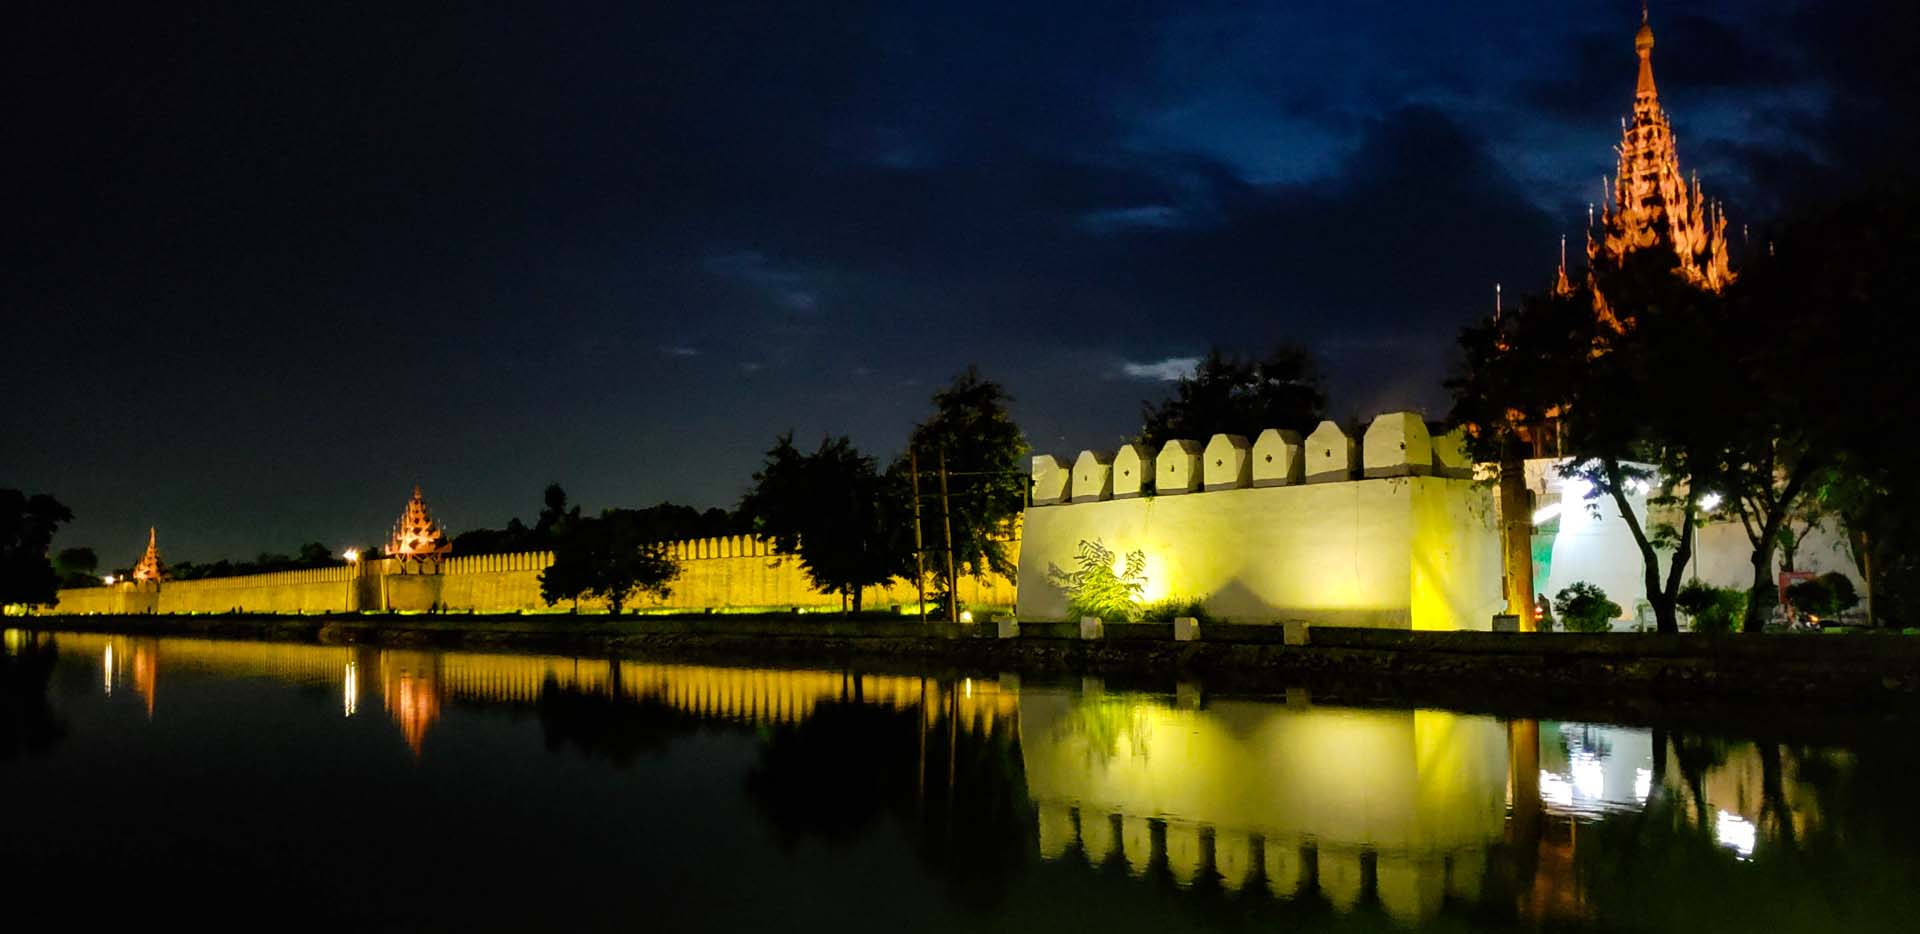 Palace Wall and Moat at Night with Lights